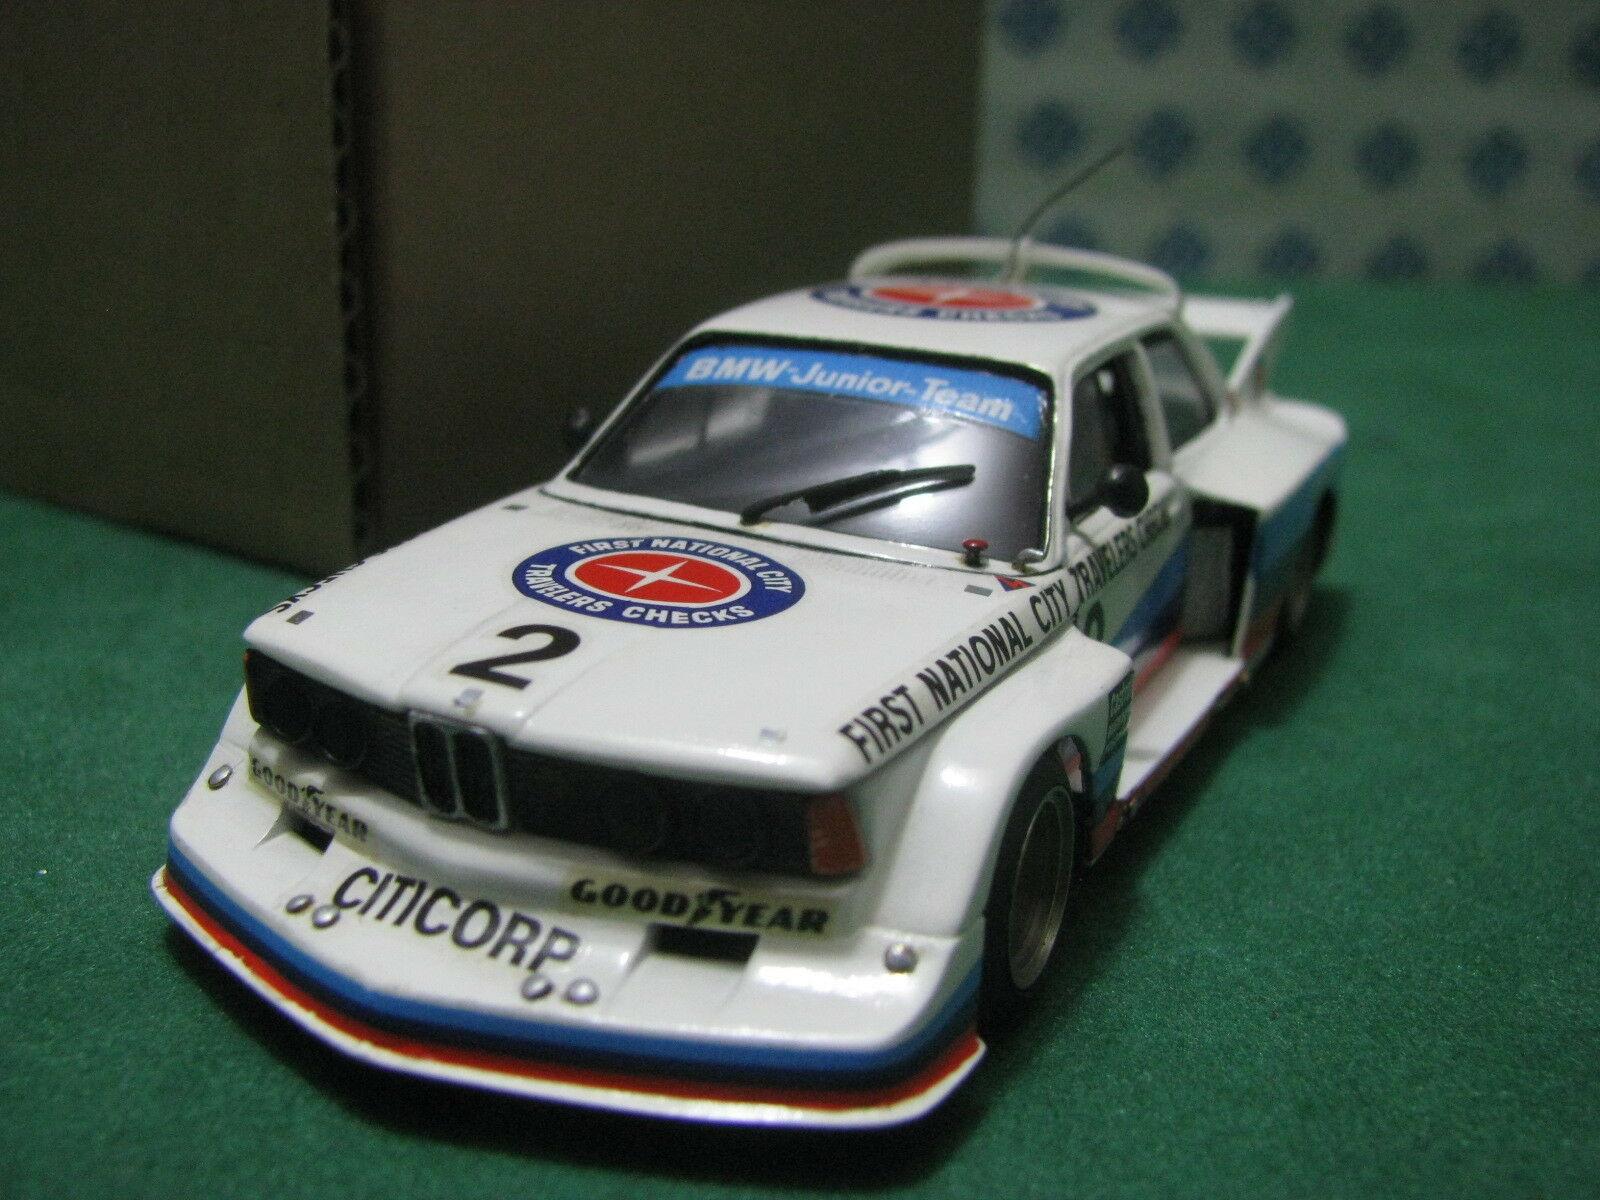 Vintage -  BMW  320  FNC   -  1 43  Minichamps France  Kit  Montato